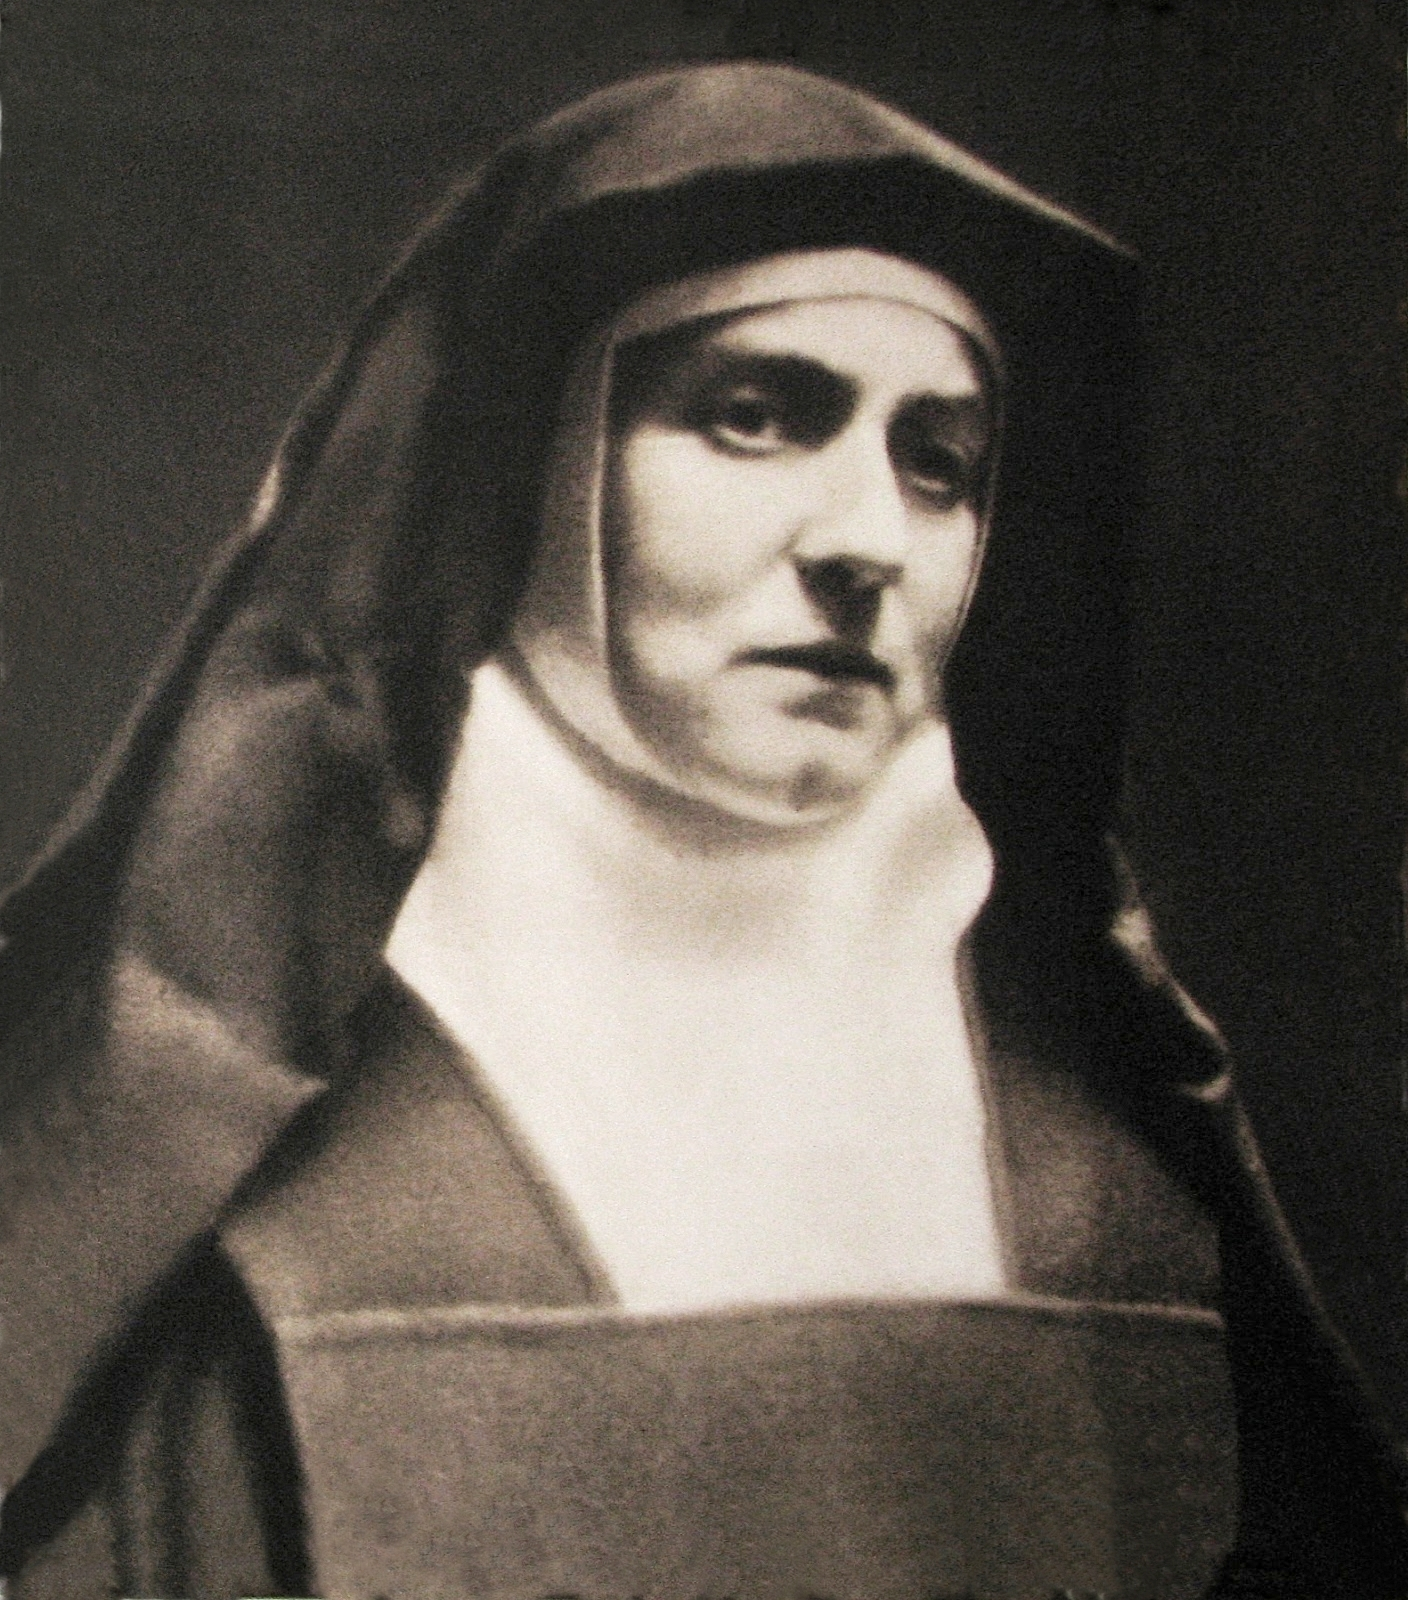 St. Teresa Benedicta of the Cross (Edith Stein)